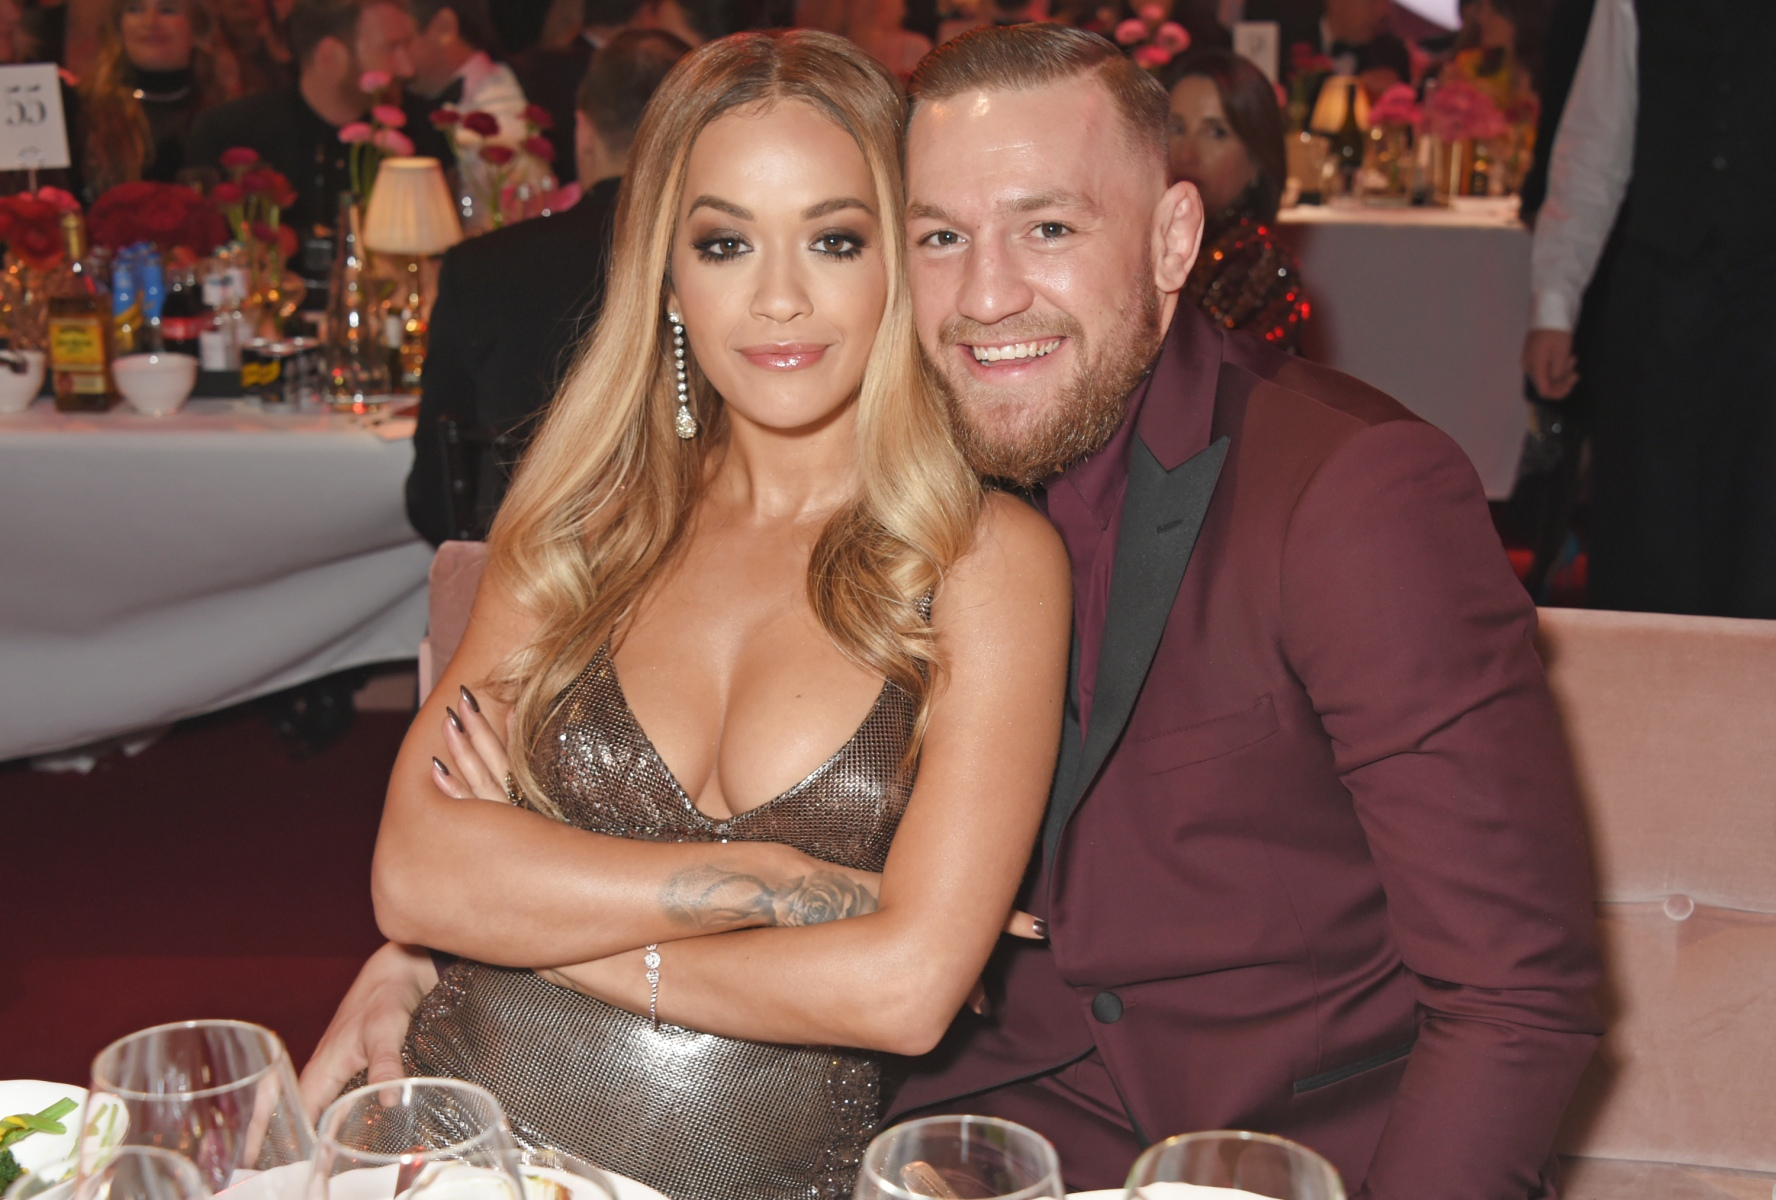 Rita Ora (L) and Conor McGregor attend a drinks reception ahead of The Fashion Awards 2017 in partnership with Swarovski at Royal Albert Hall on December 4, 2017 in London, England.  (David M. Benett/Dave Benett/Getty Images)